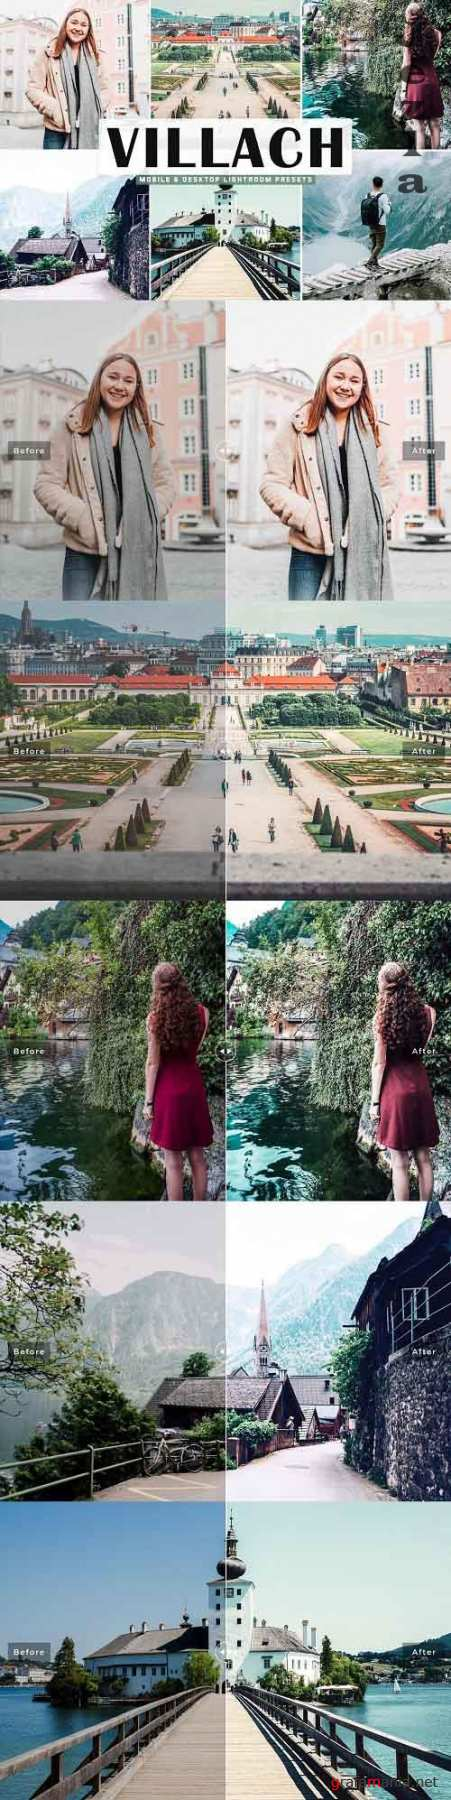 Villach Pro Lightroom Presets - 5015516 - Mobile & Desktop